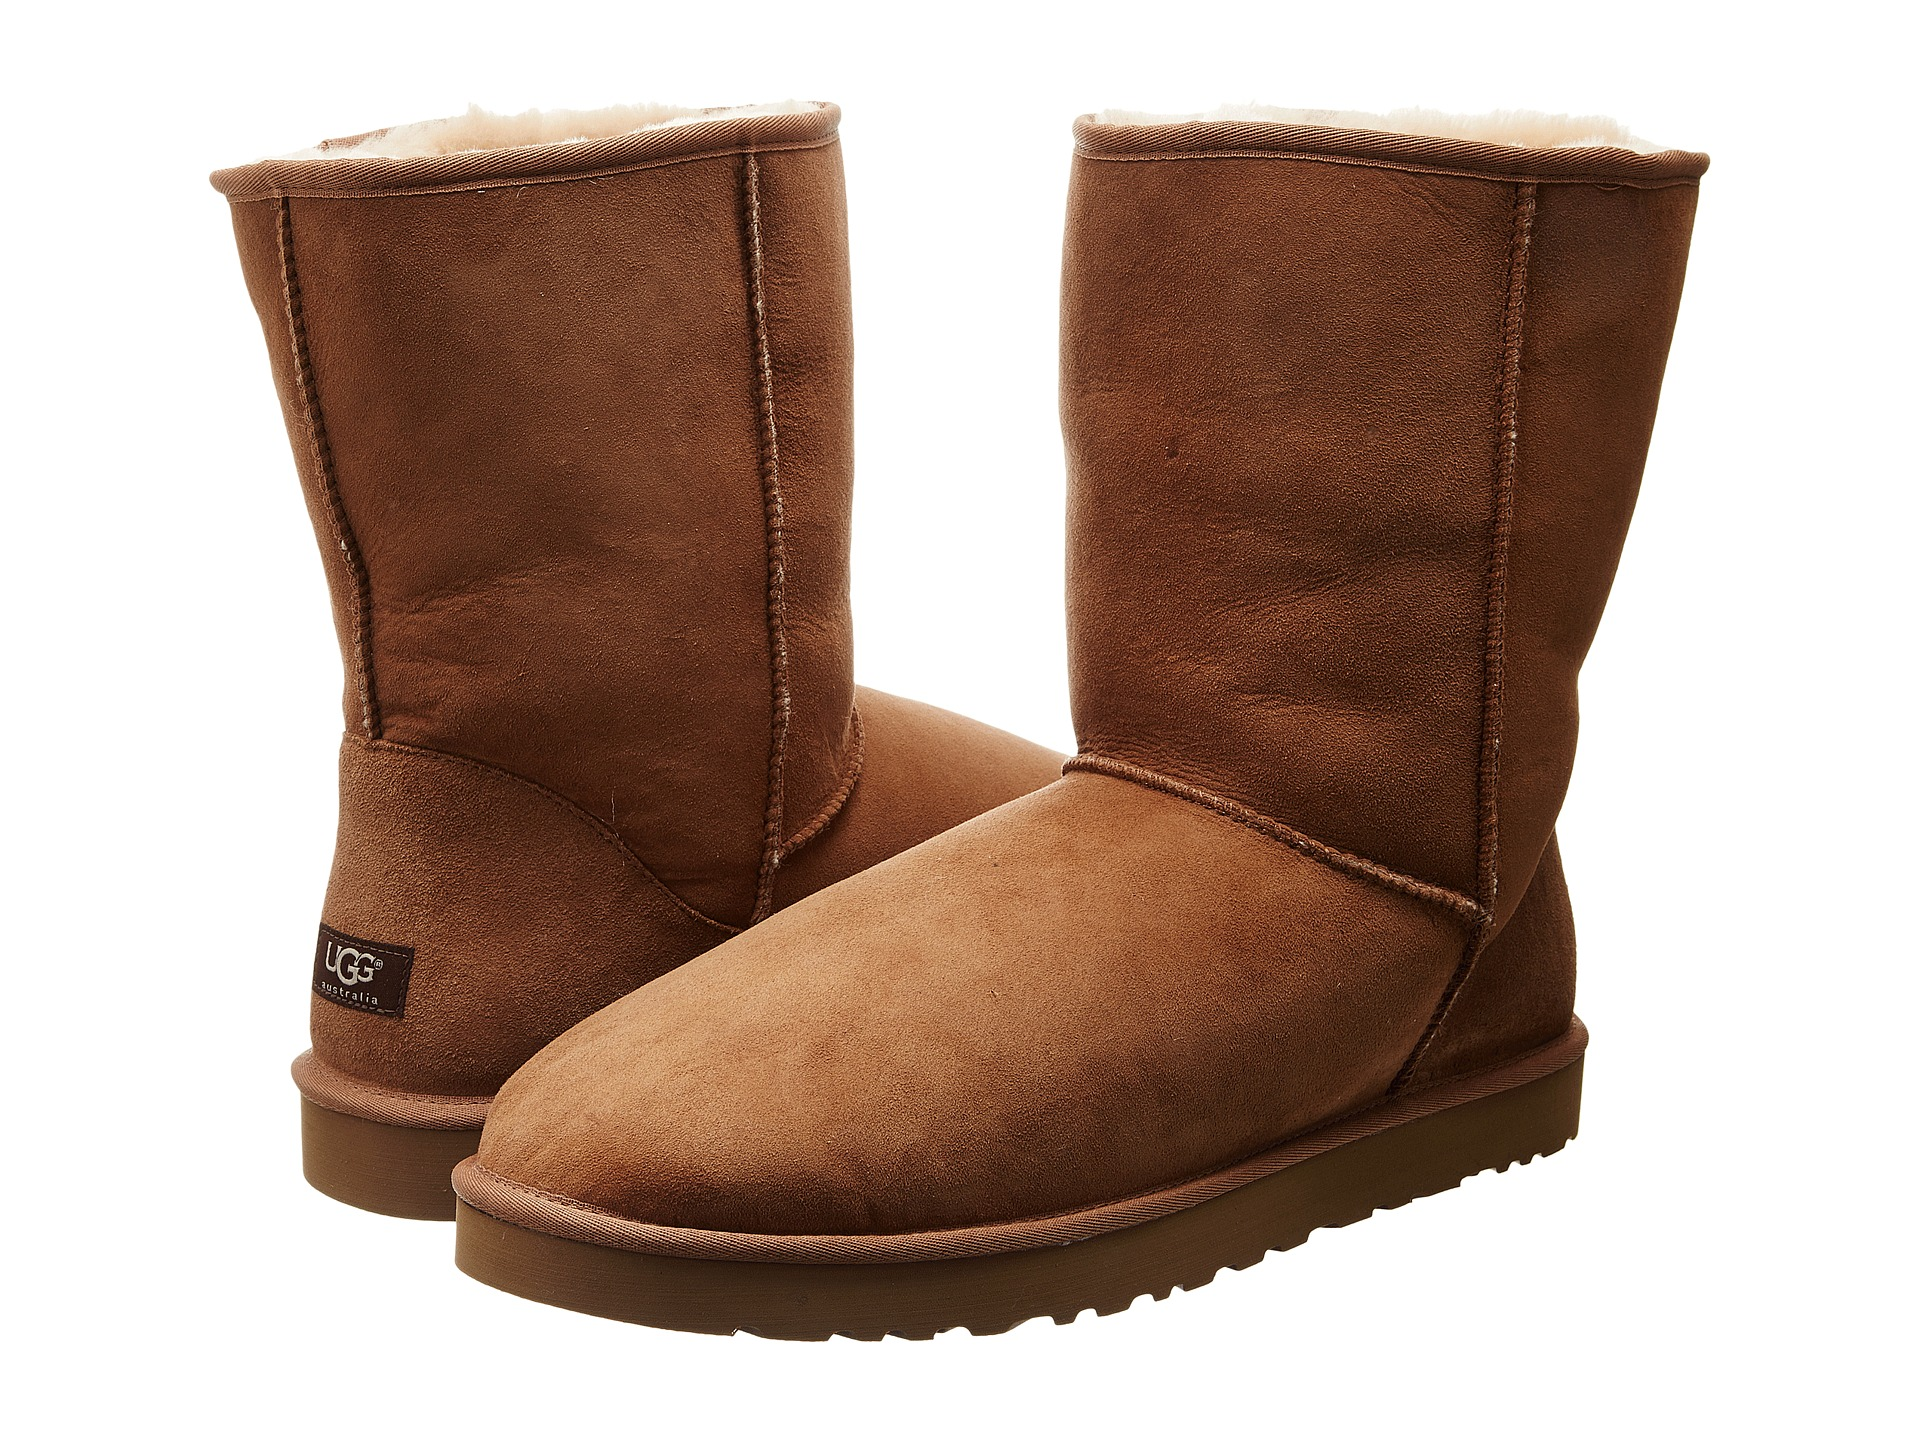 ugg classic short boot sale